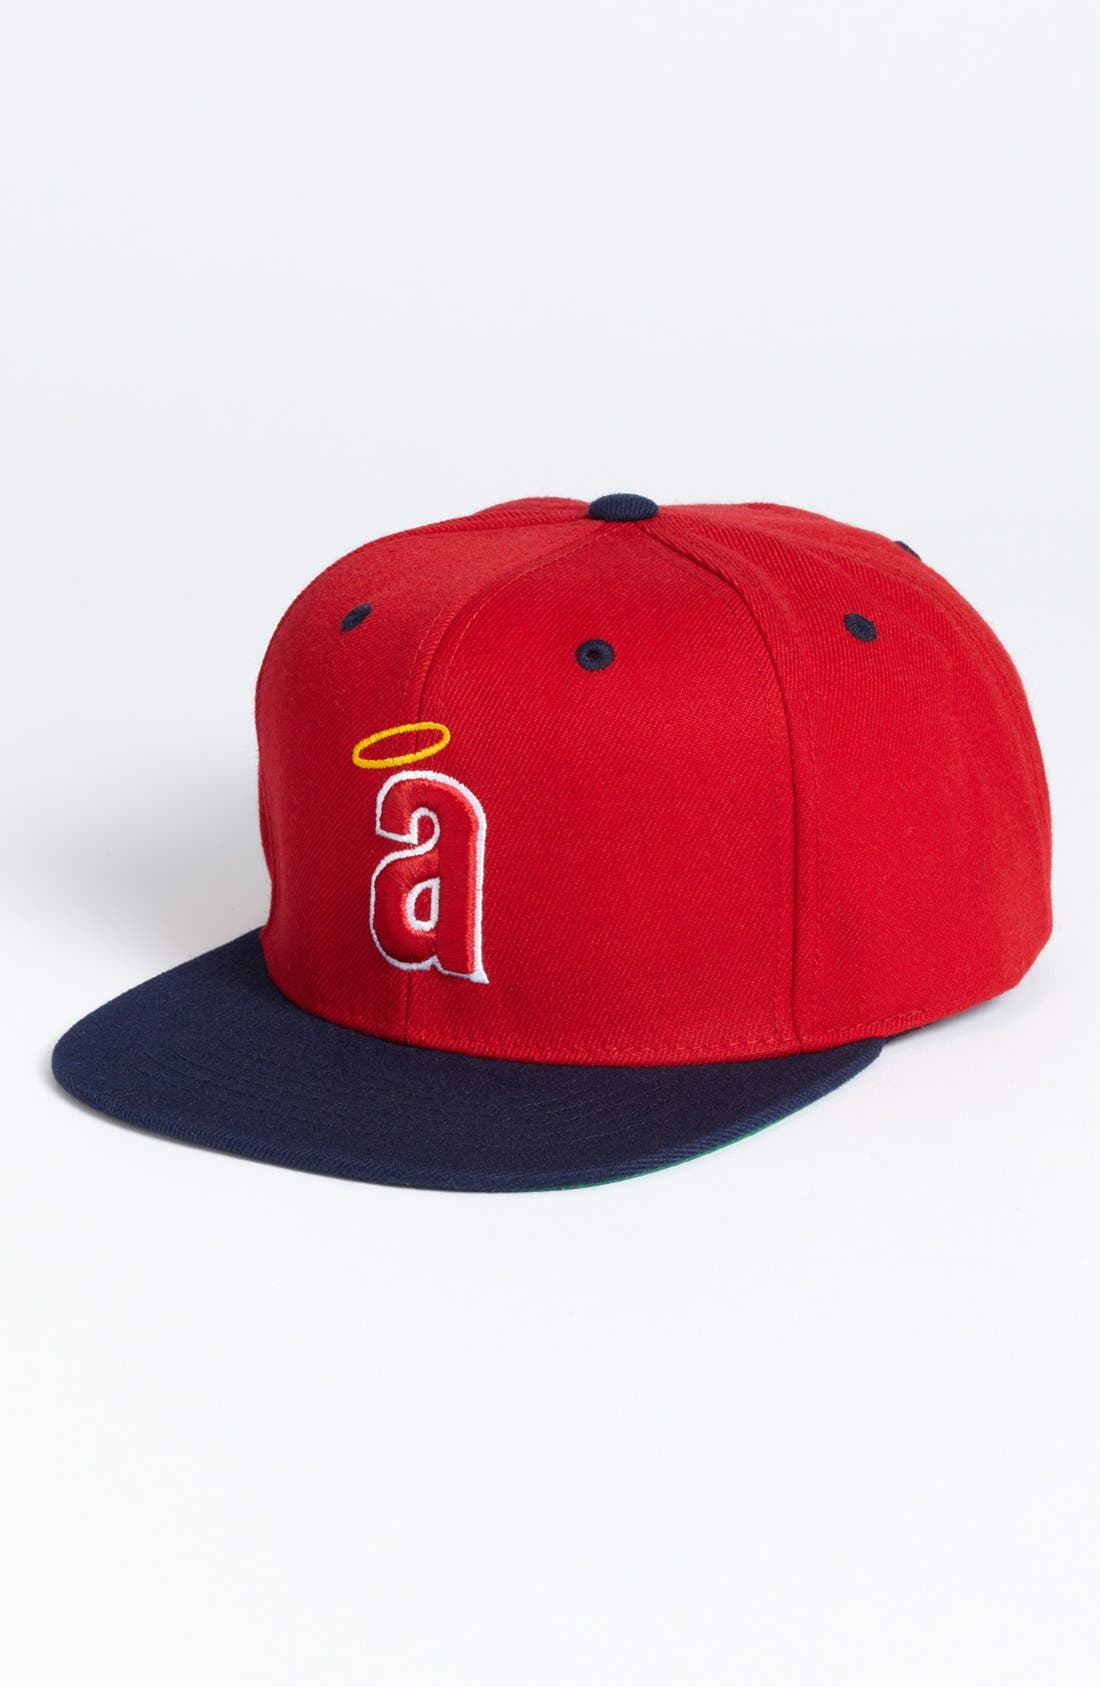 Alternate Image 1 Selected - American Needle 'Anaheim Angels - Back 2 Front' Snapback Baseball Cap